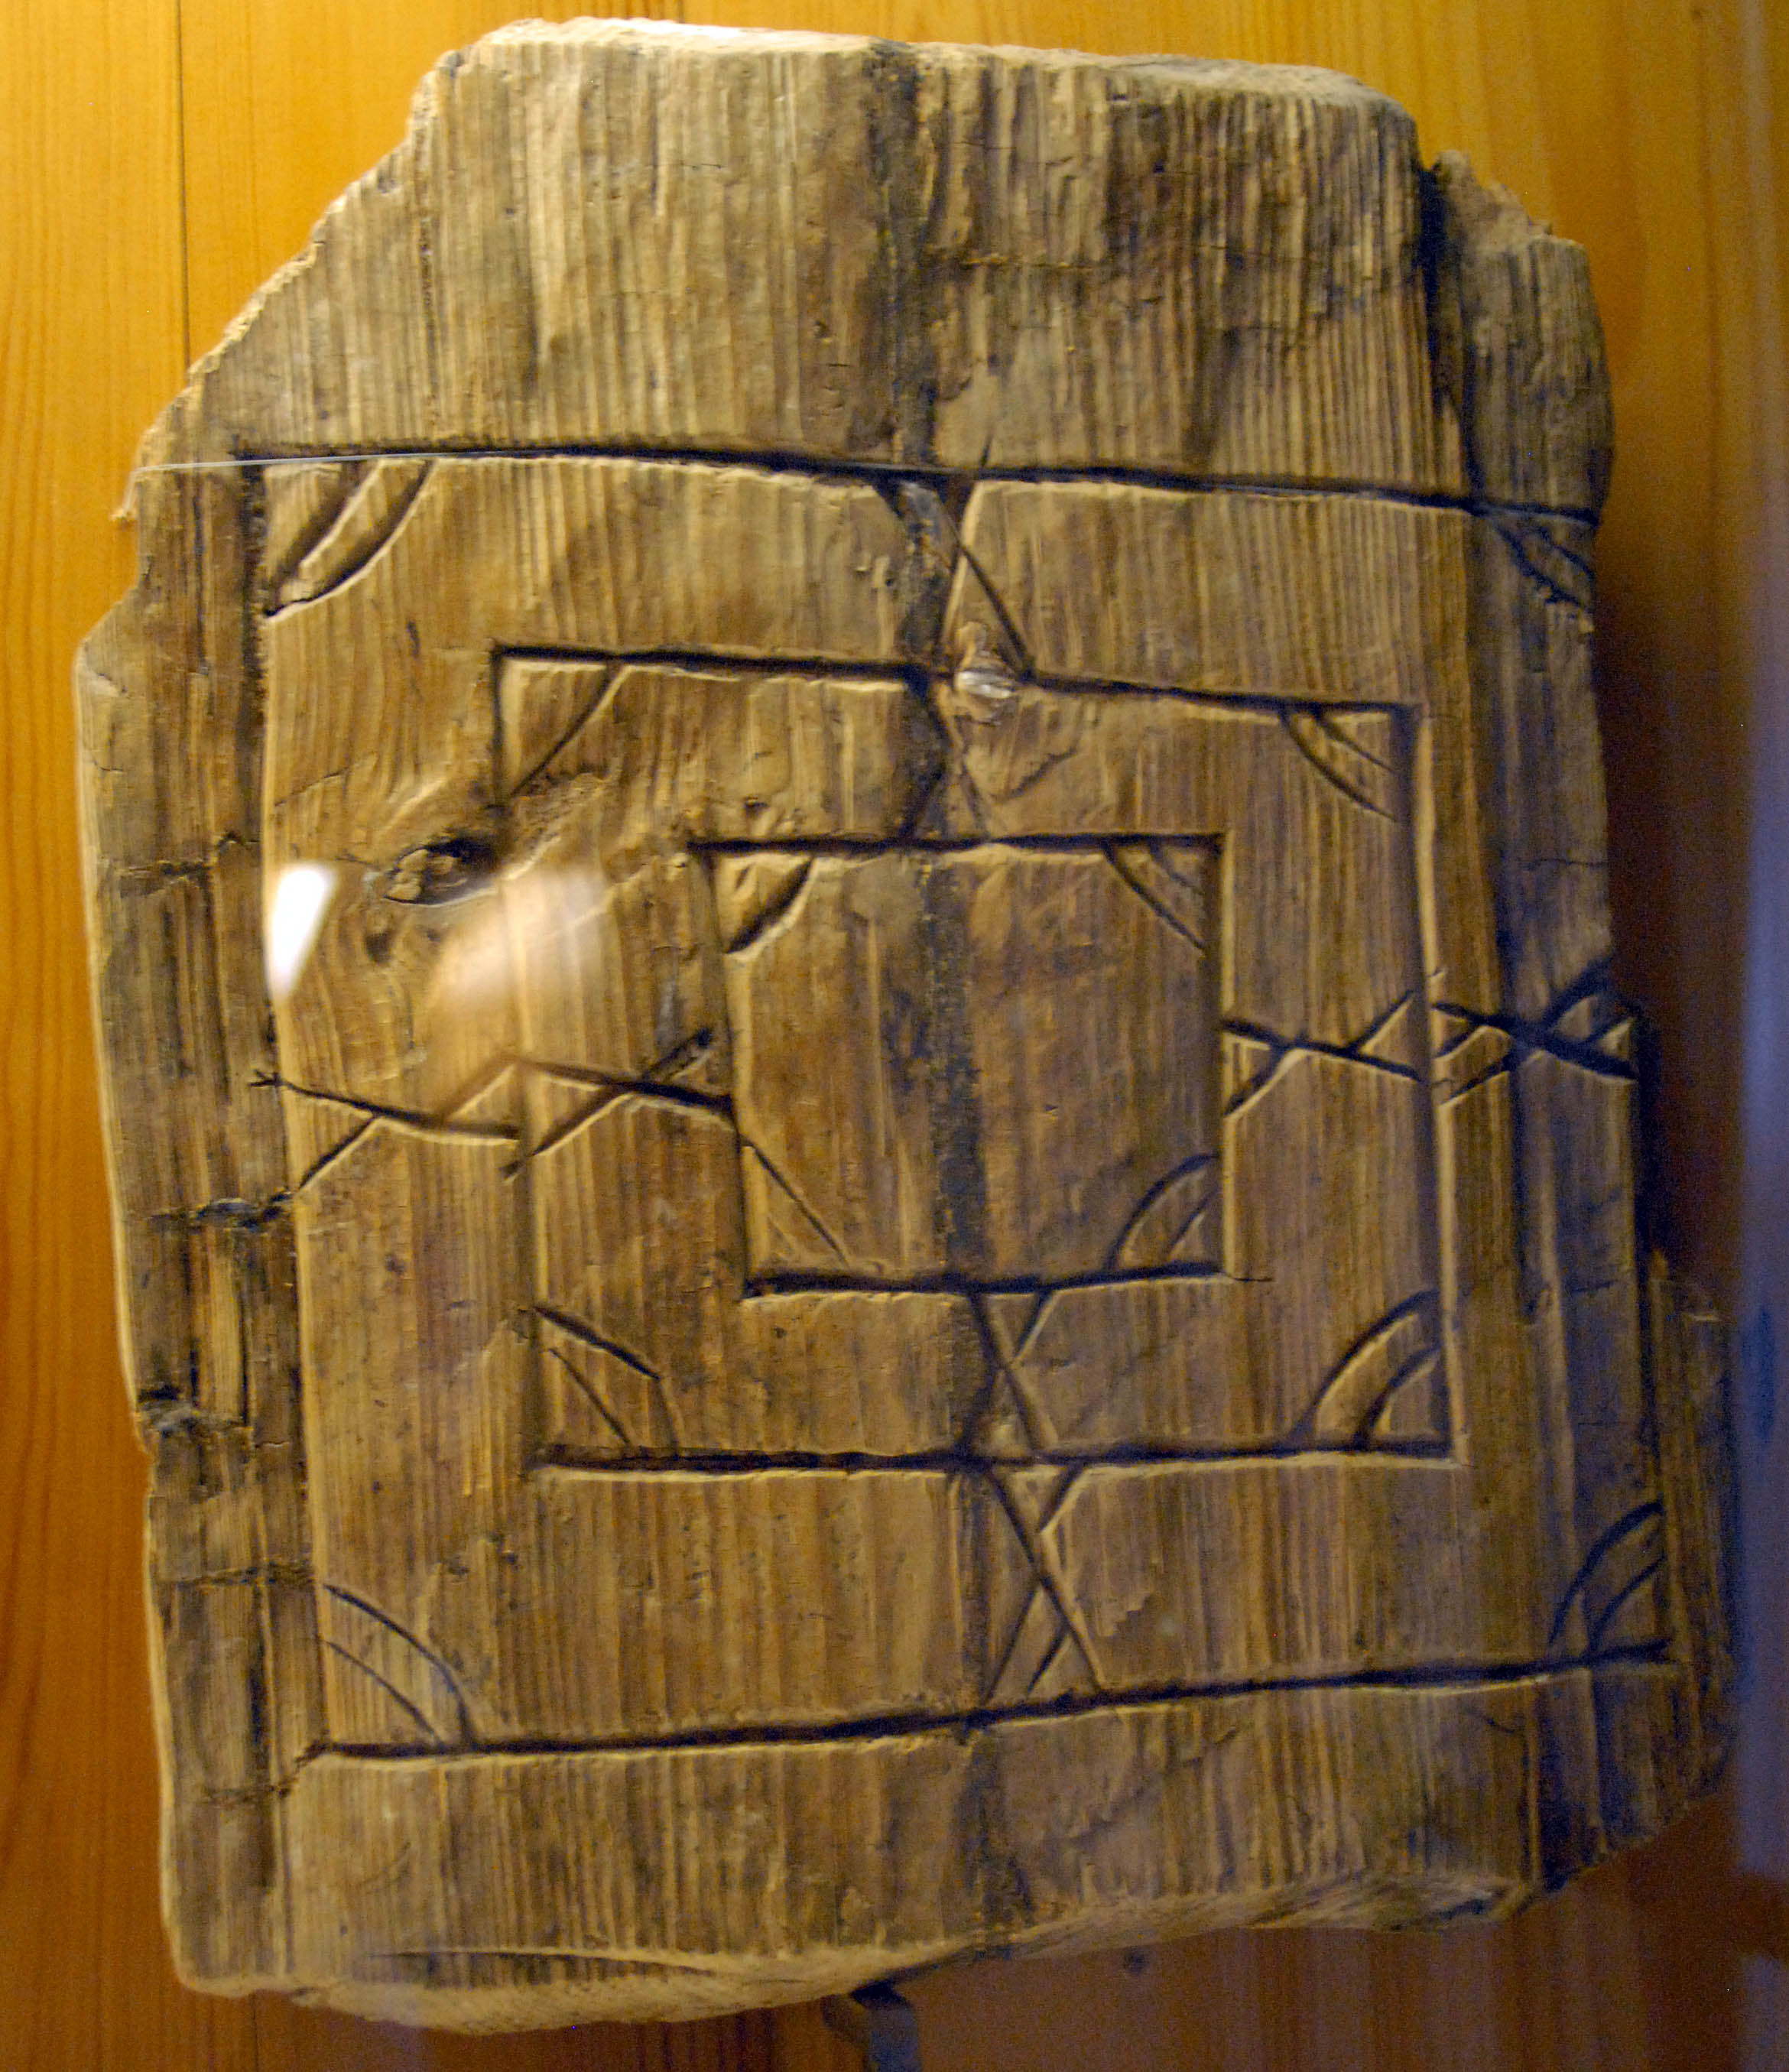 Wooden Nine Men's Morris from medieval Velikiy Novgorod, Russia. Novgorod State United Museum. Photo: Professor Michael Fuller, St. Louis Community College, 2006.